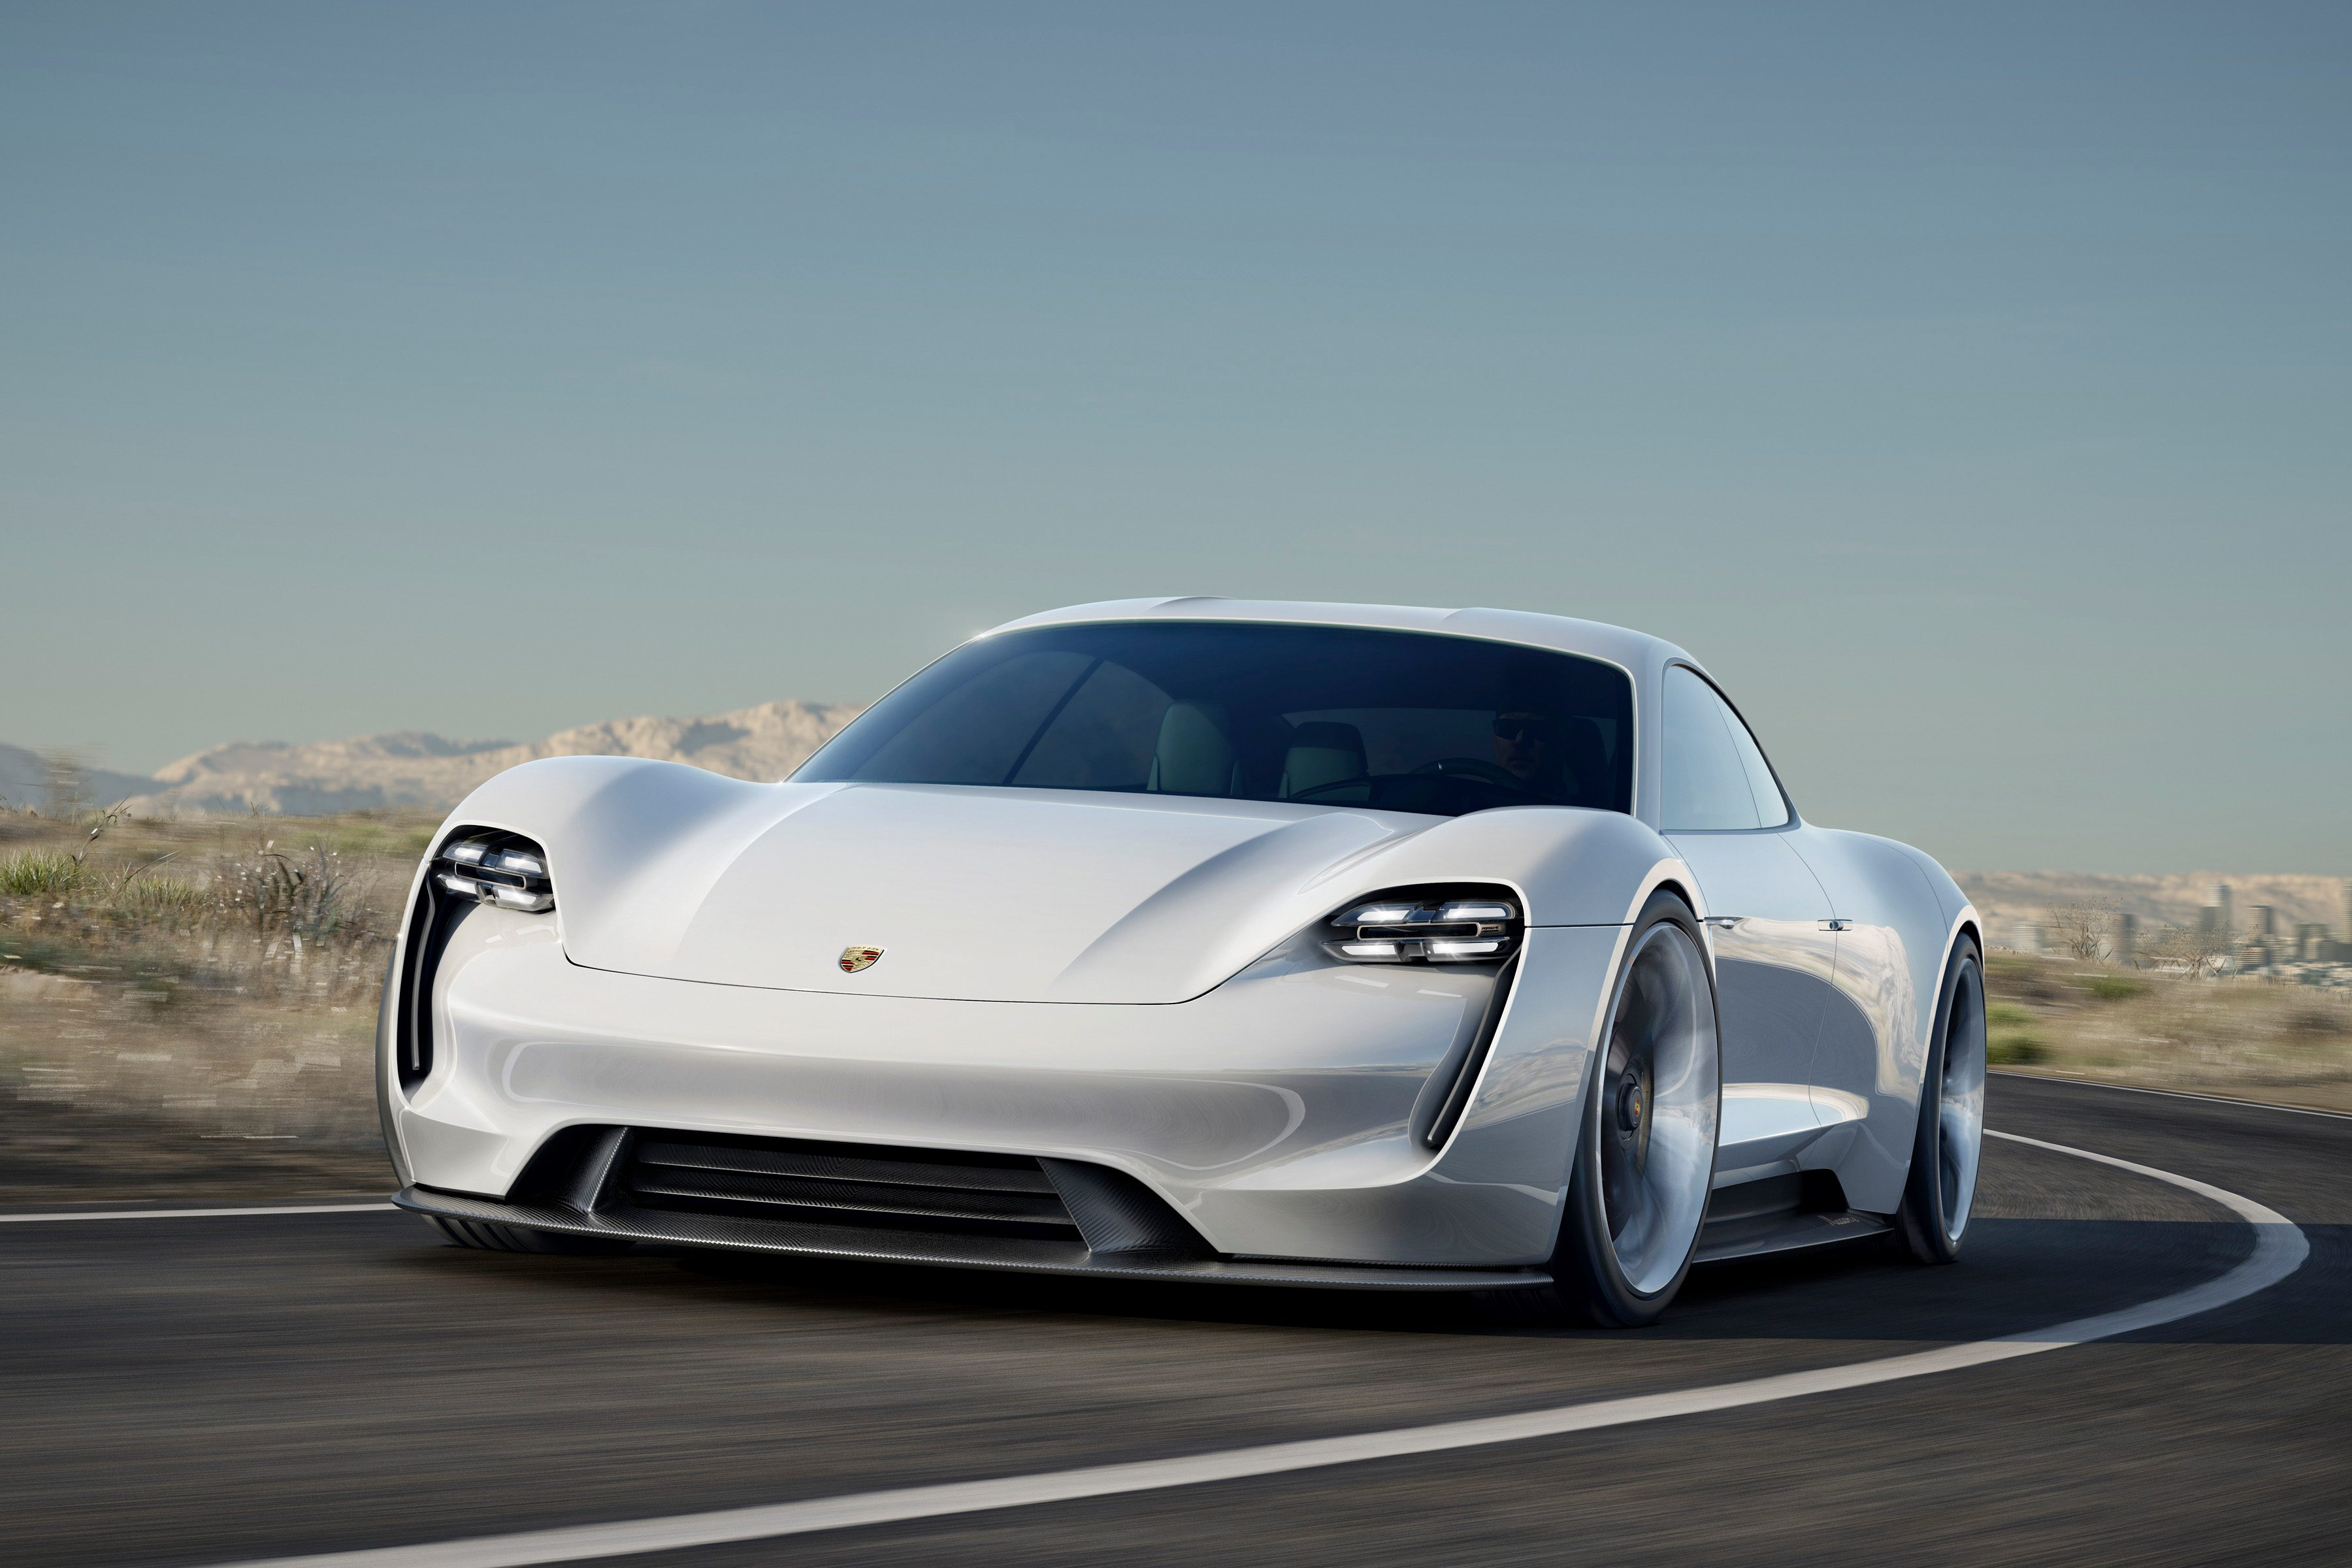 Porsche releases first teaser images of new Taycan Mission E 3600x2400